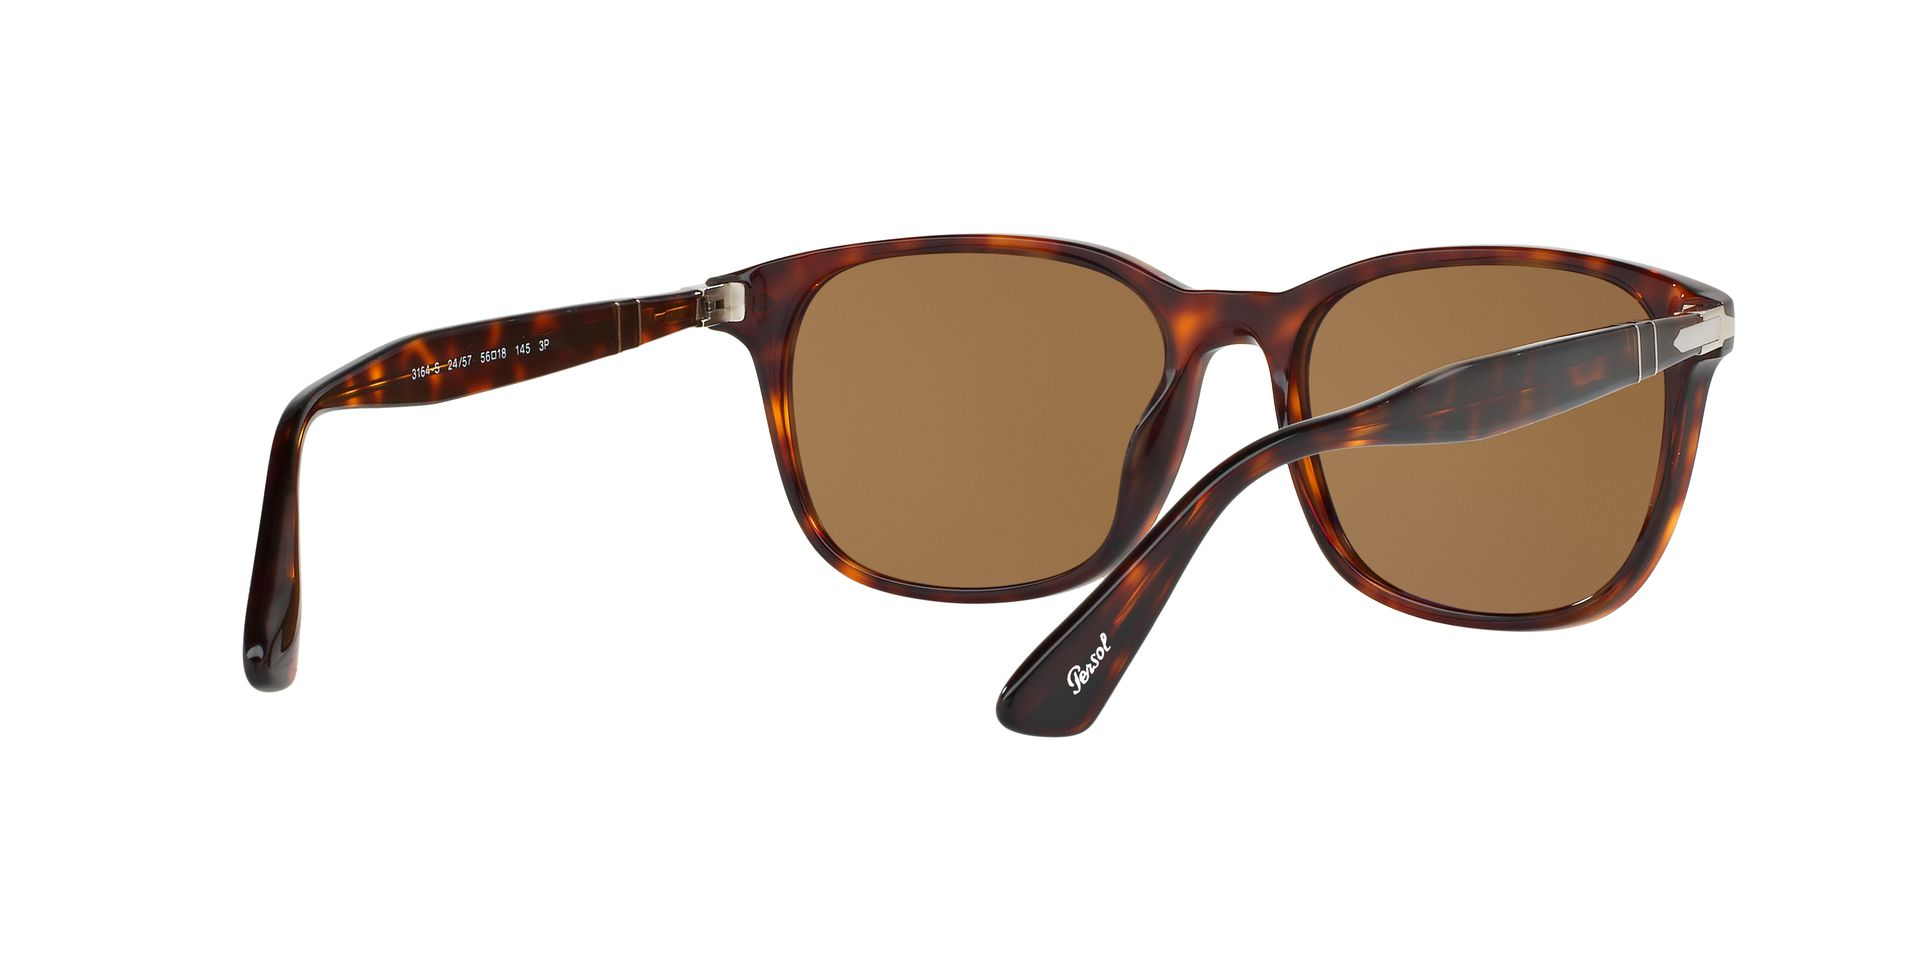 b224b27a33 Brillenchic-onlineshop in Berlin - Persol PO 3164S 3164 24 57 ...